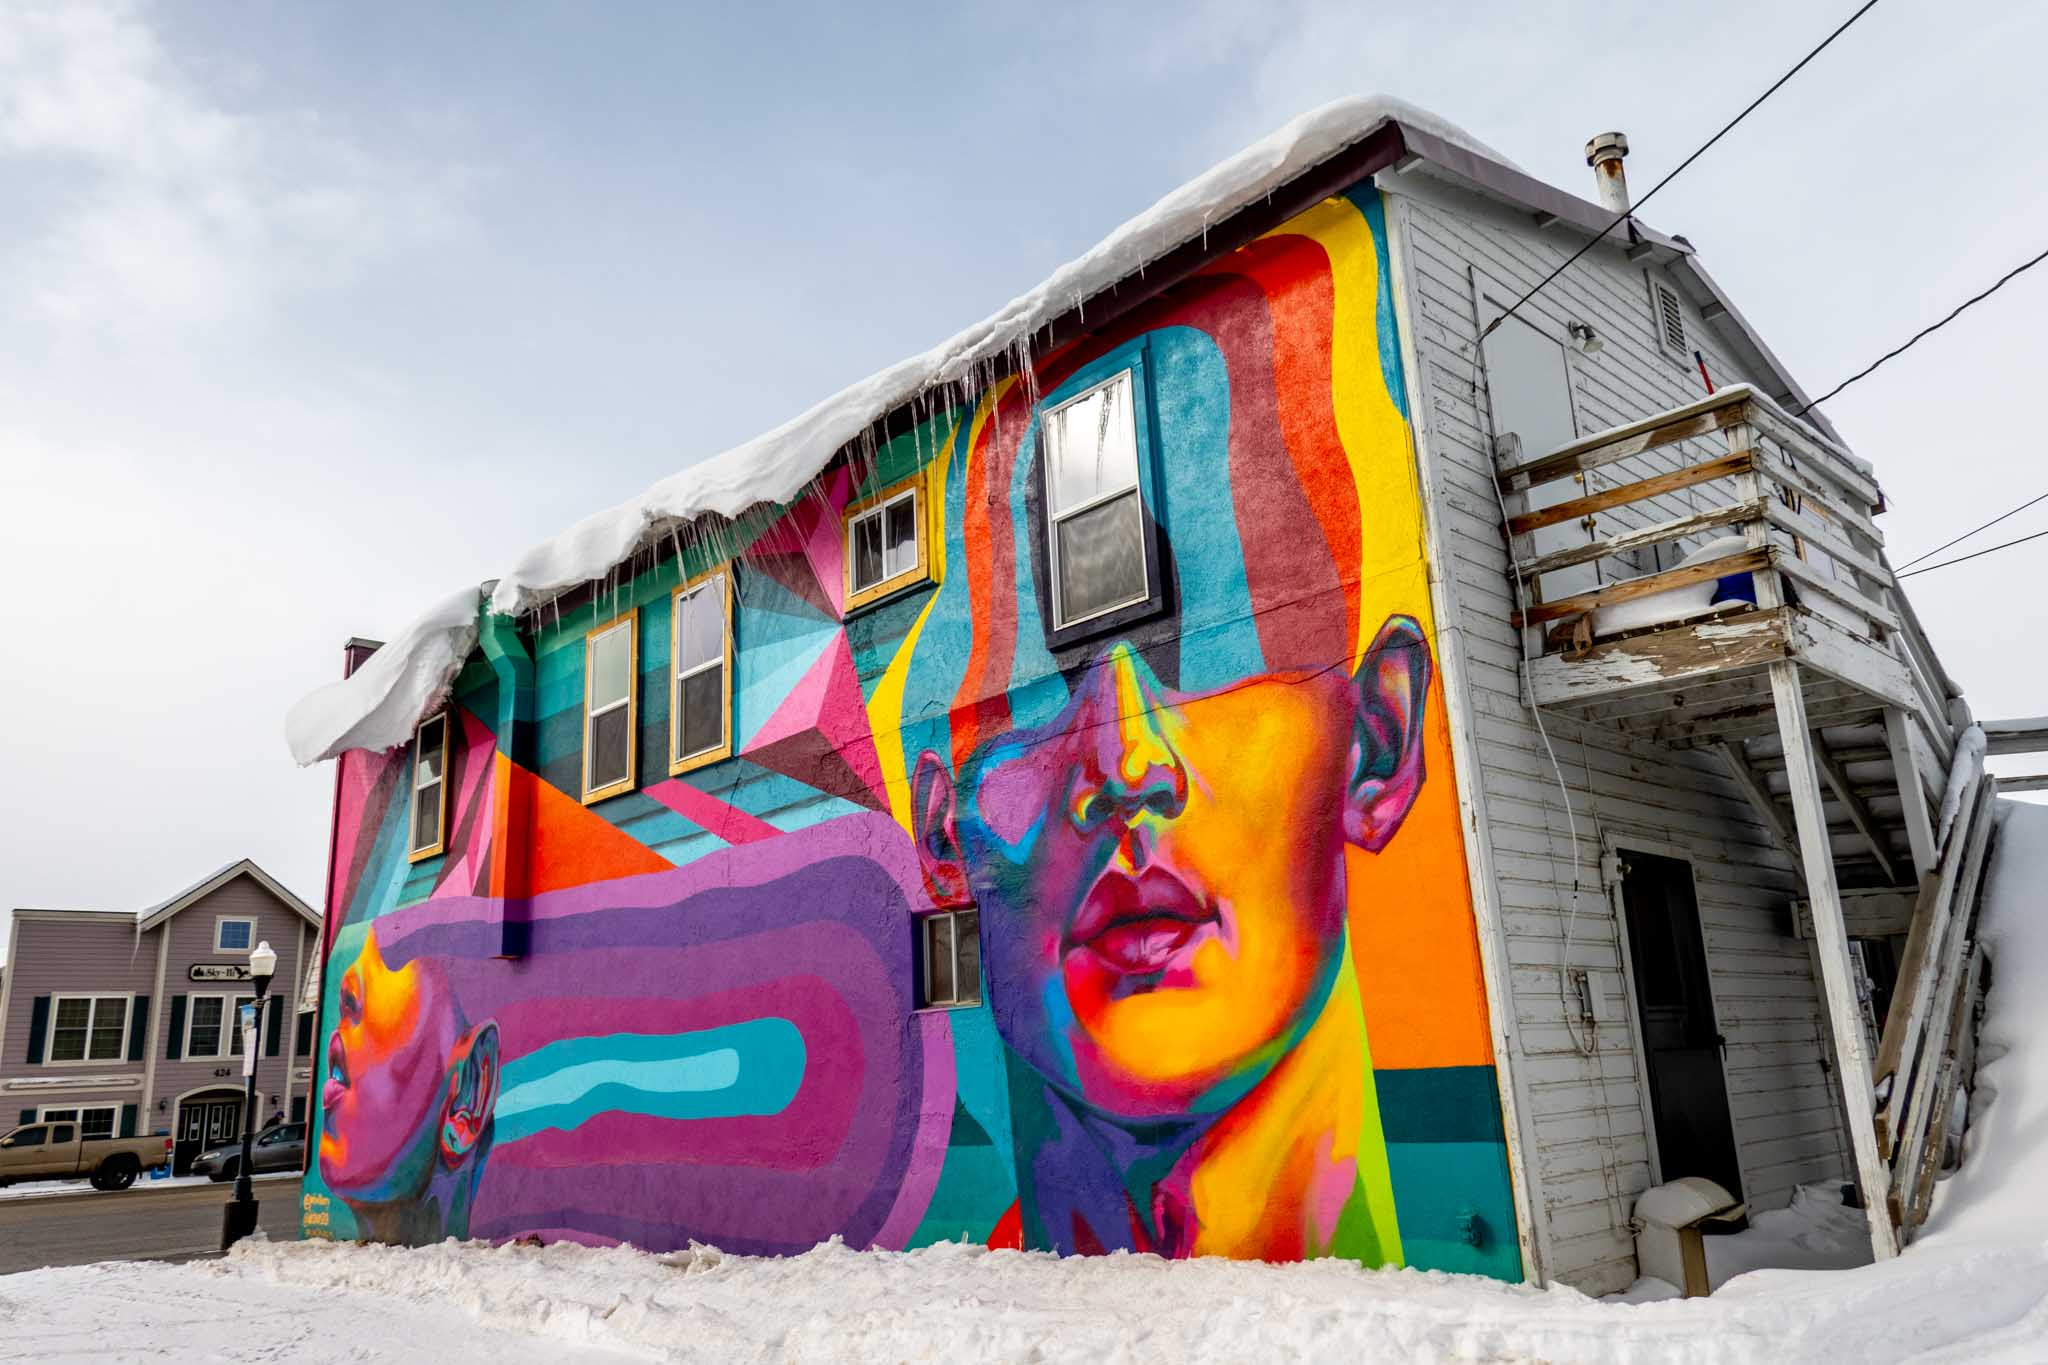 Colorful mural on side of building of two heads